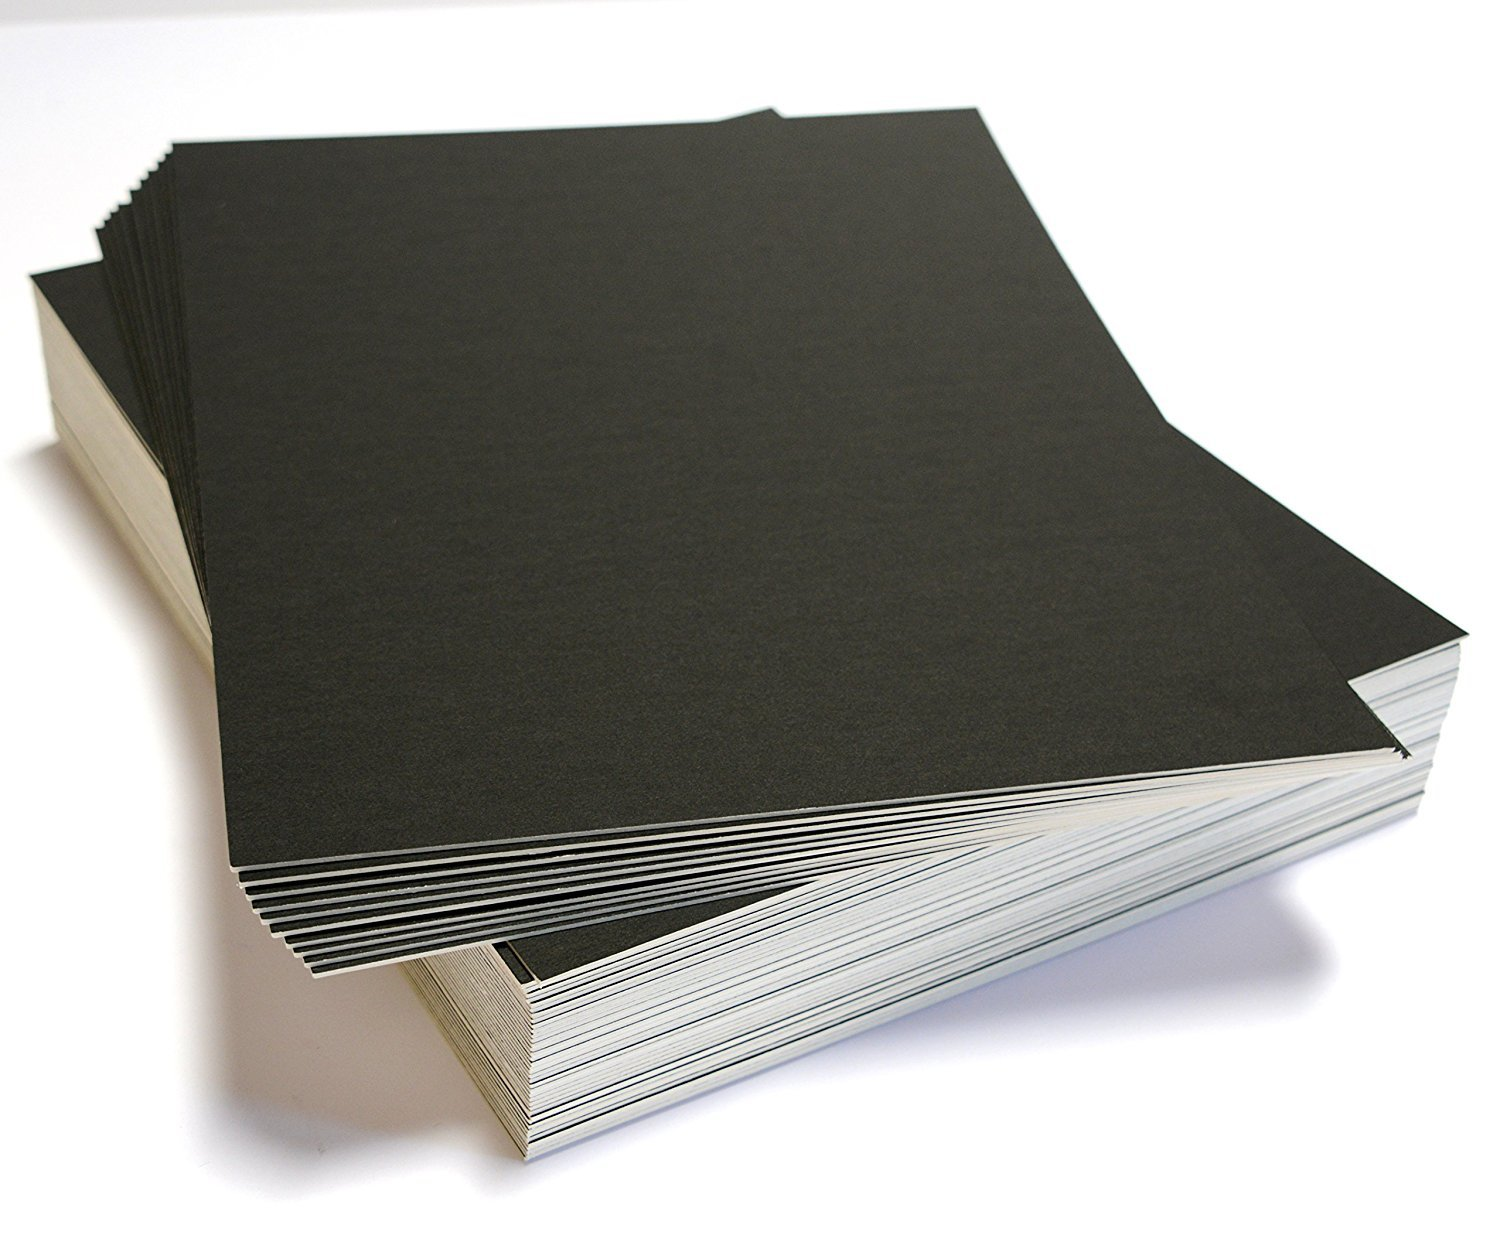 topseller100, Pack of 50 sheets 8x10 UNCUT matboard / mat boards (Black) by Unknown